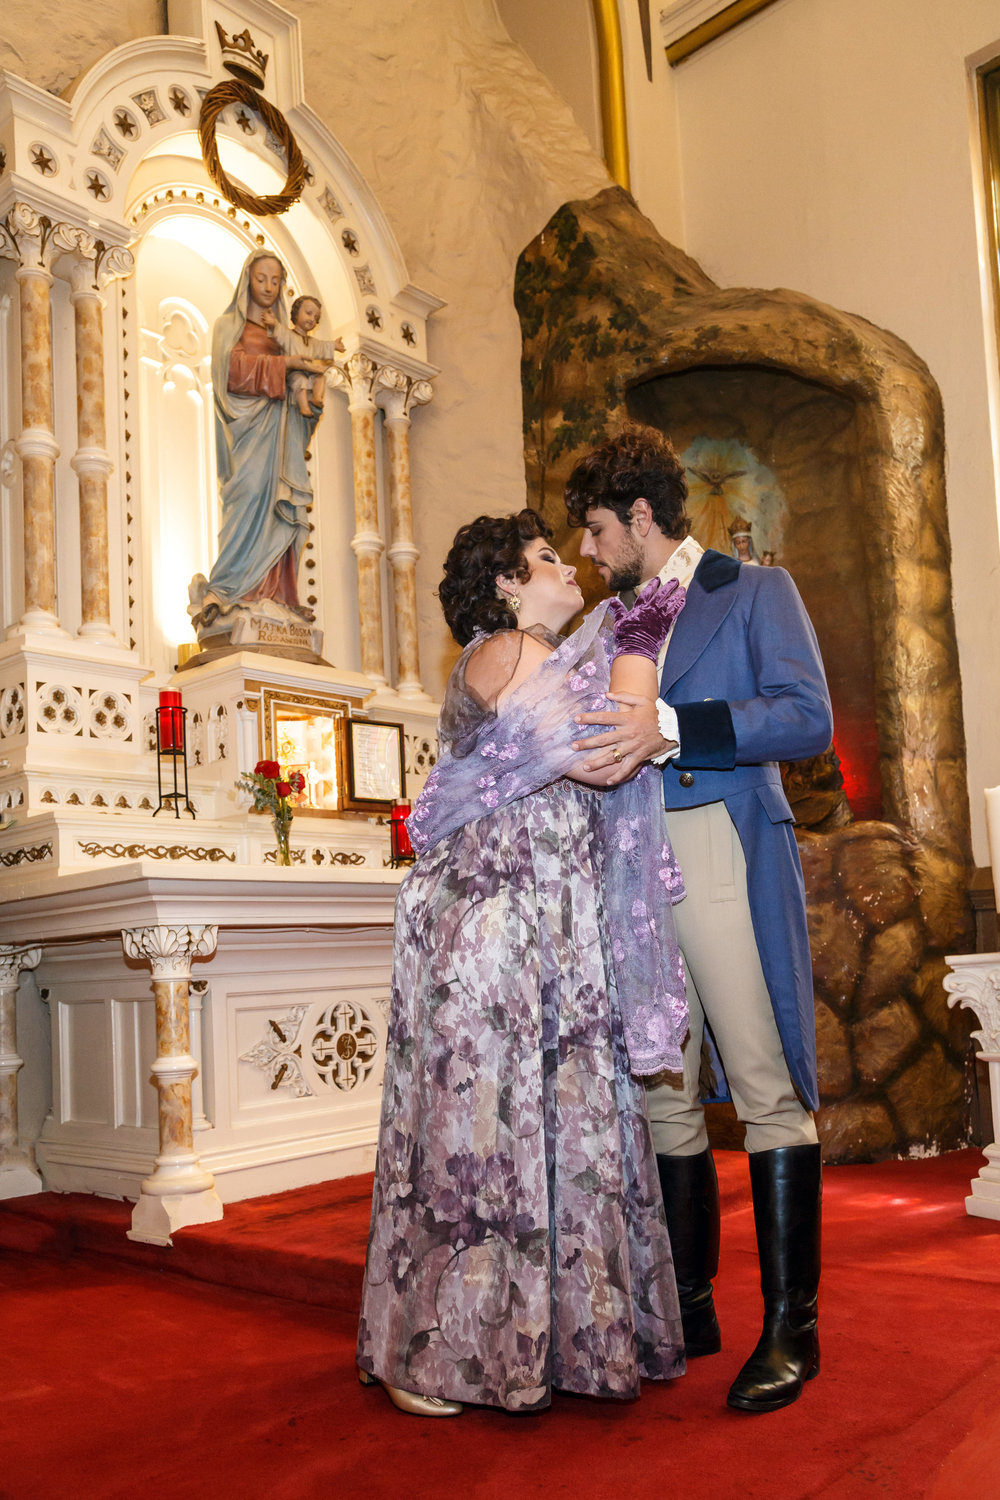 Photocall photo with Leah Crocetto as Tosca and Thiago Arancam as Cavaradossi. Photo by David Bachman Photography, taken at Stanislaus Kostka Church in the Strip District; courtesy of Pittsburgh Opera.